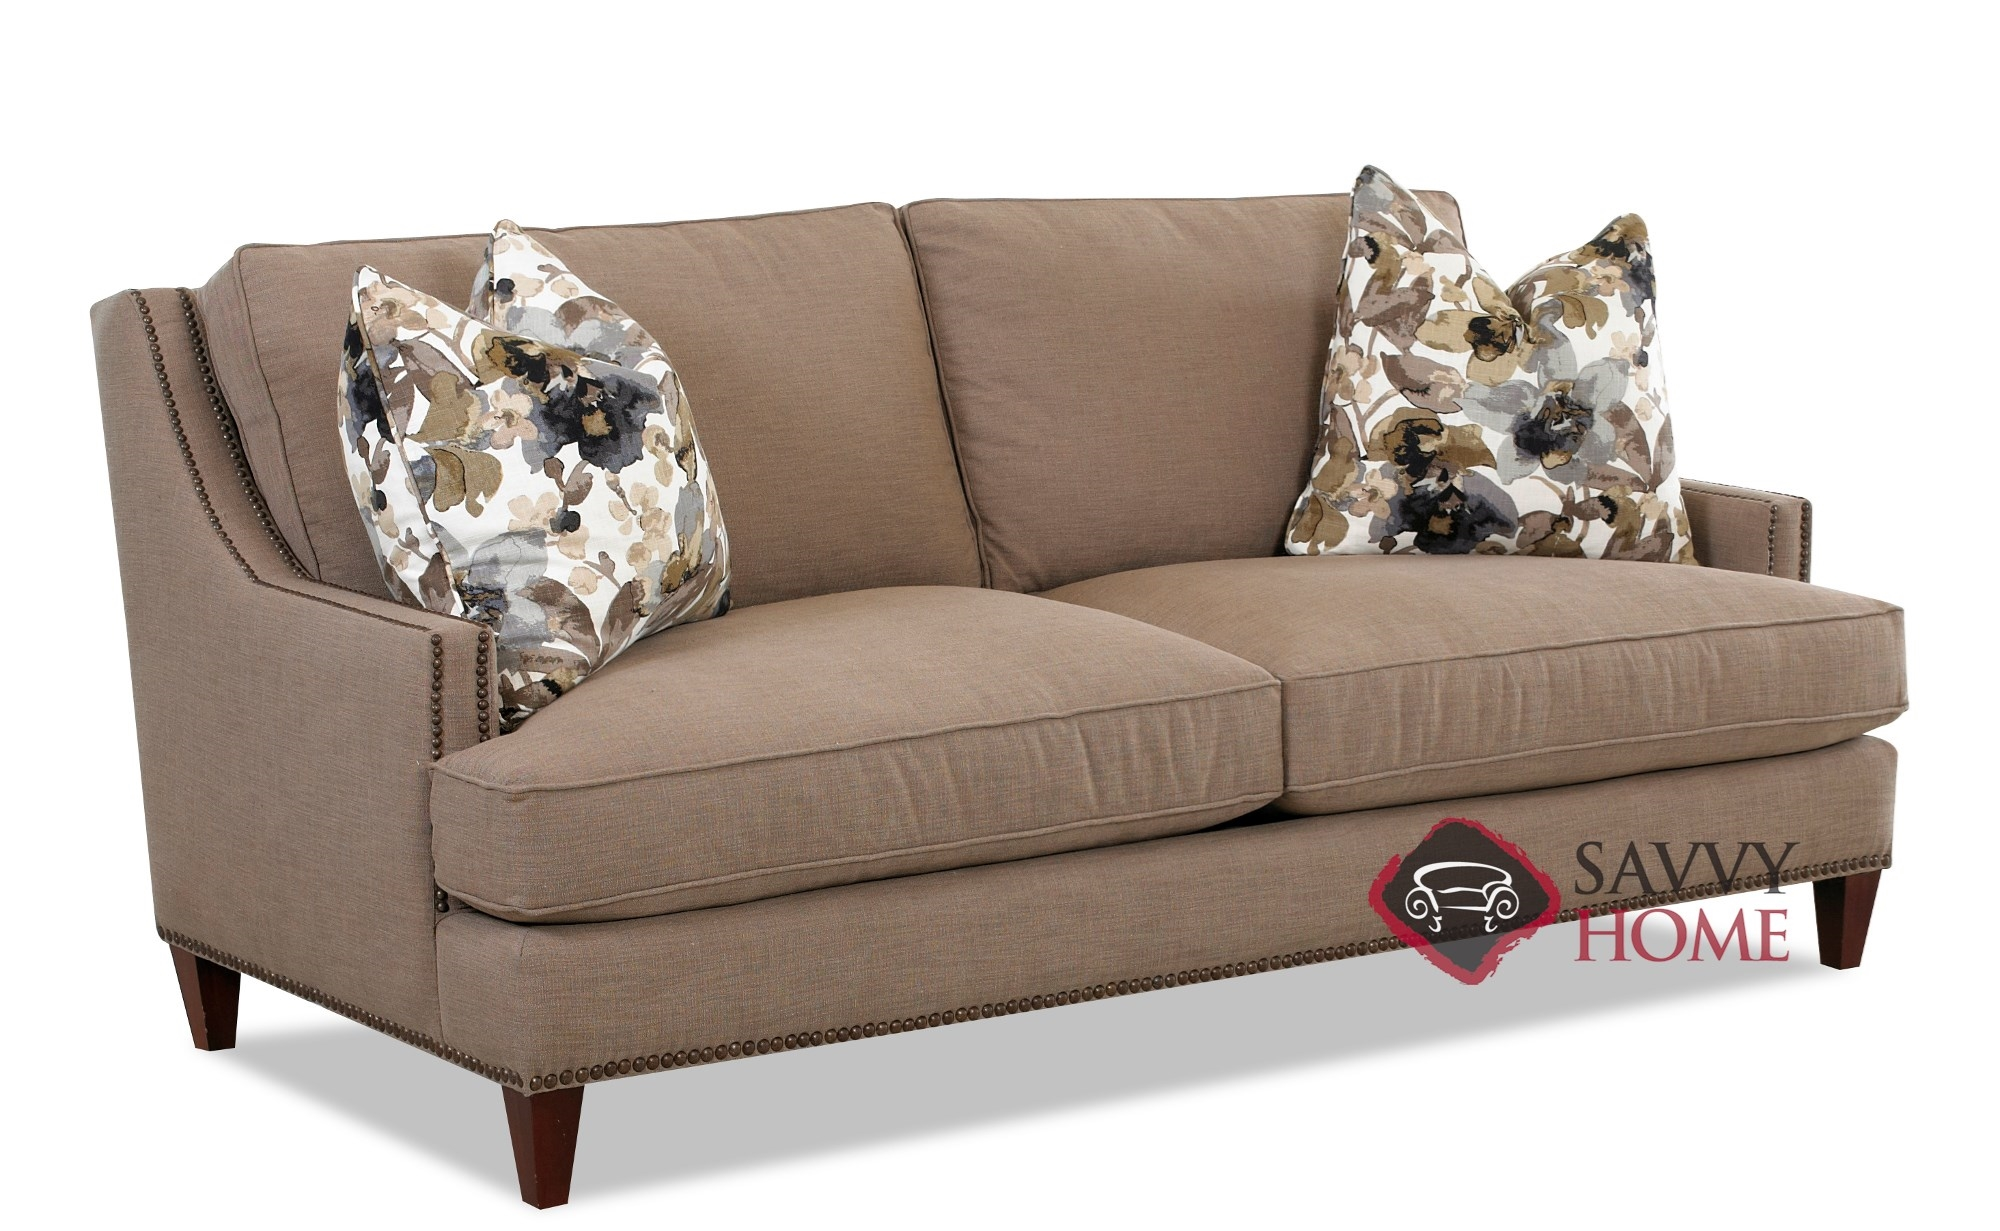 sofa dallas texas wooden furniture coimbatore fabric stationary by savvy is fully